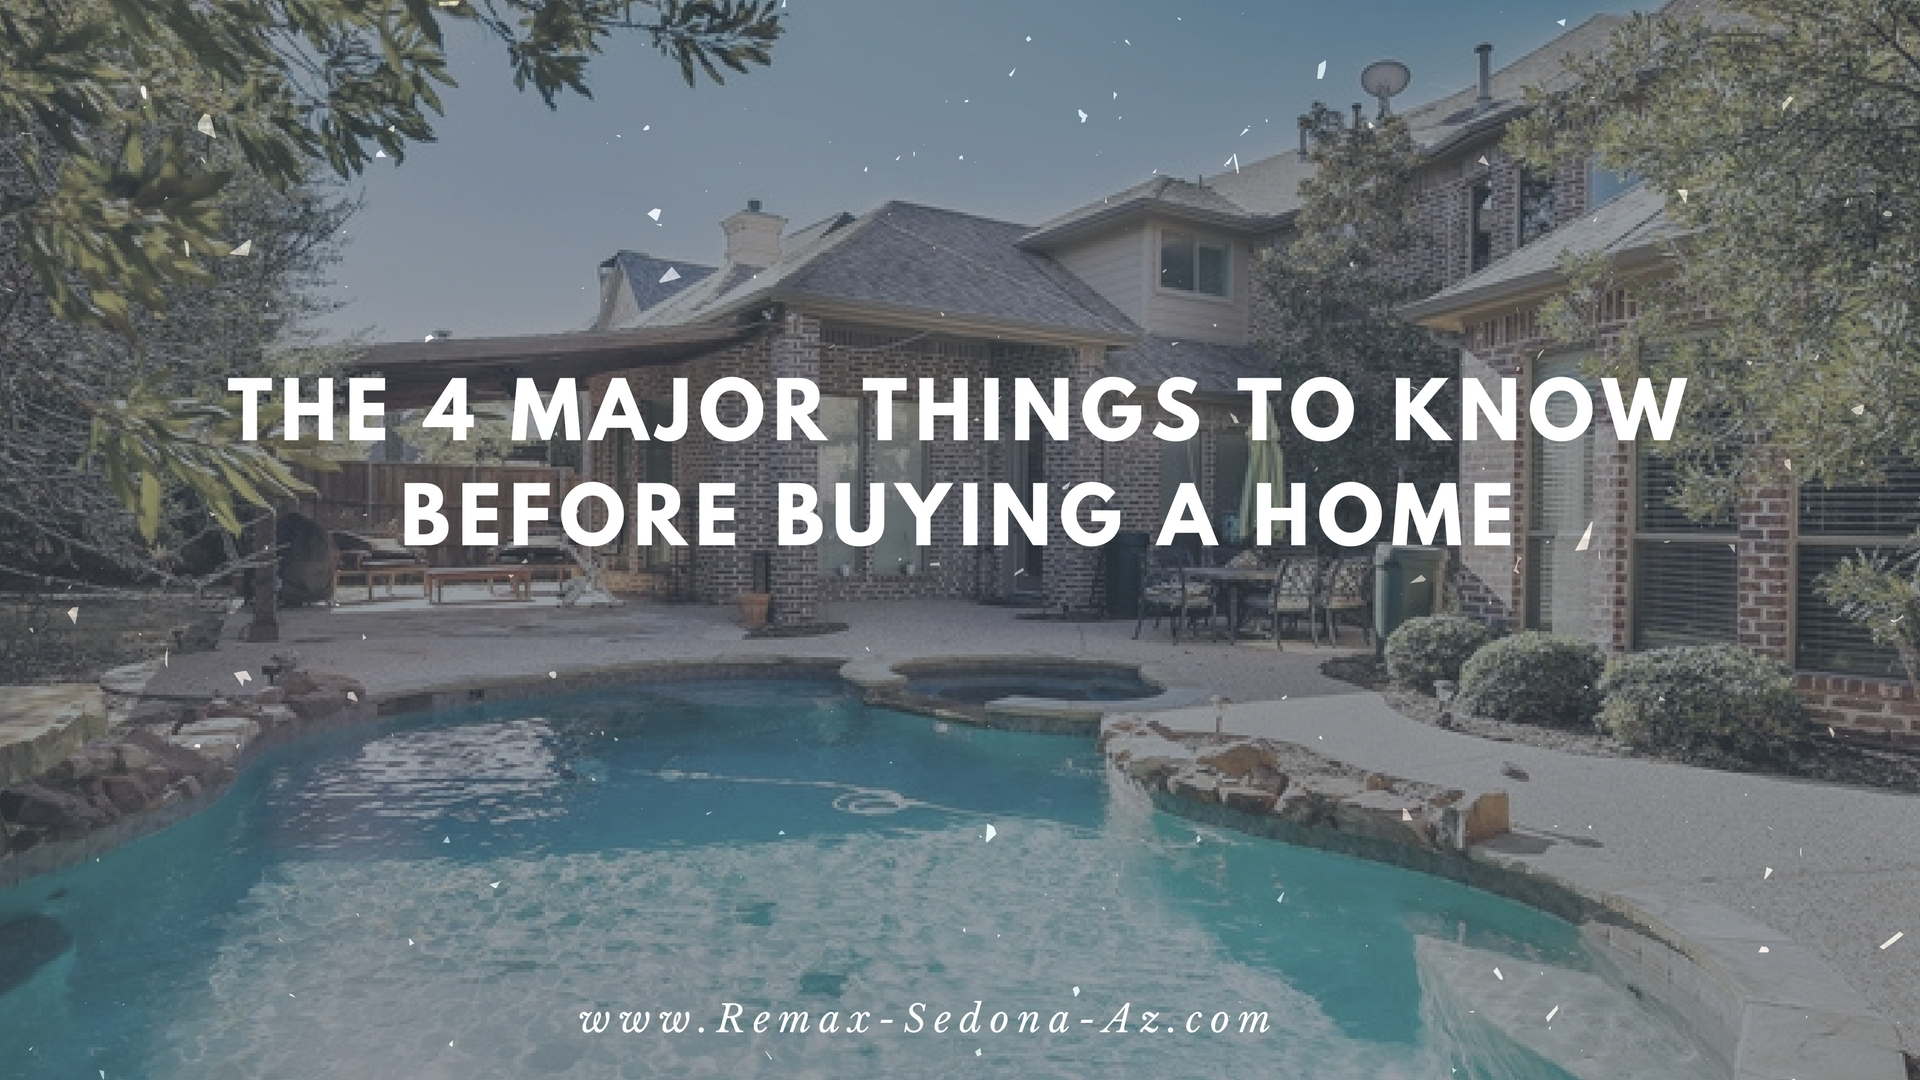 The 4 Things to KNow Before Buying a House